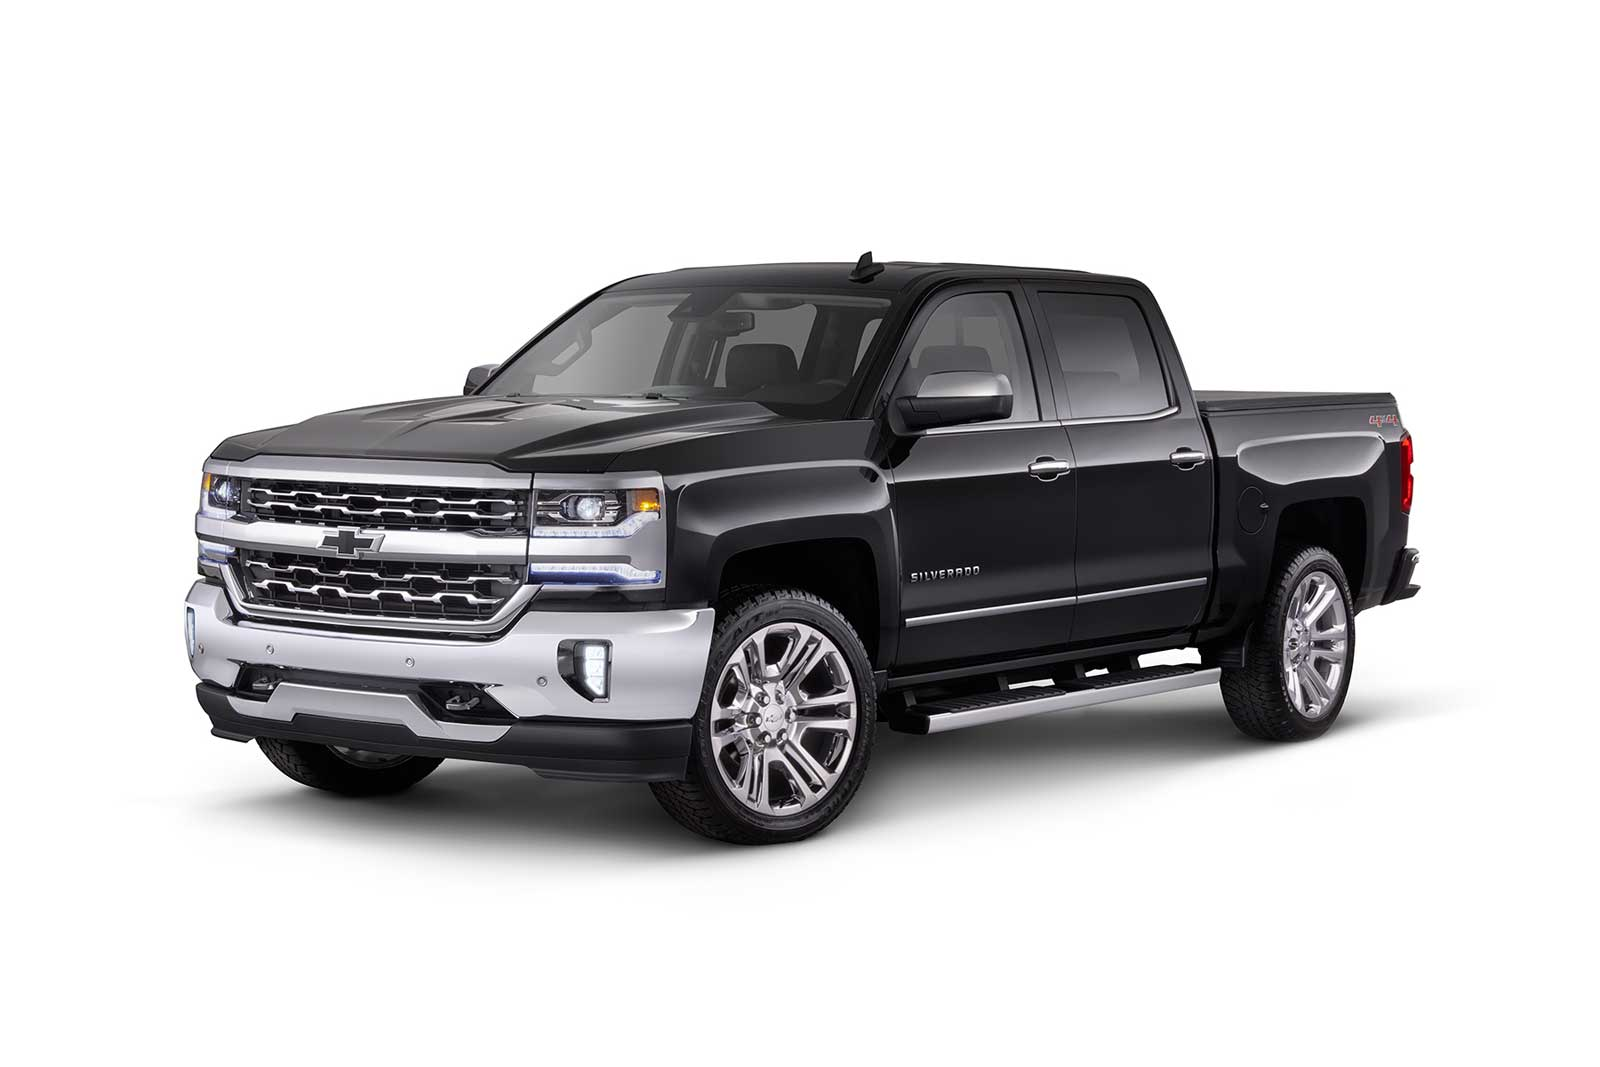 Chevy Silverado Texas Edition >> Costco Teams Up with Chevrolet for Special-Edition Silverado » AutoGuide.com News